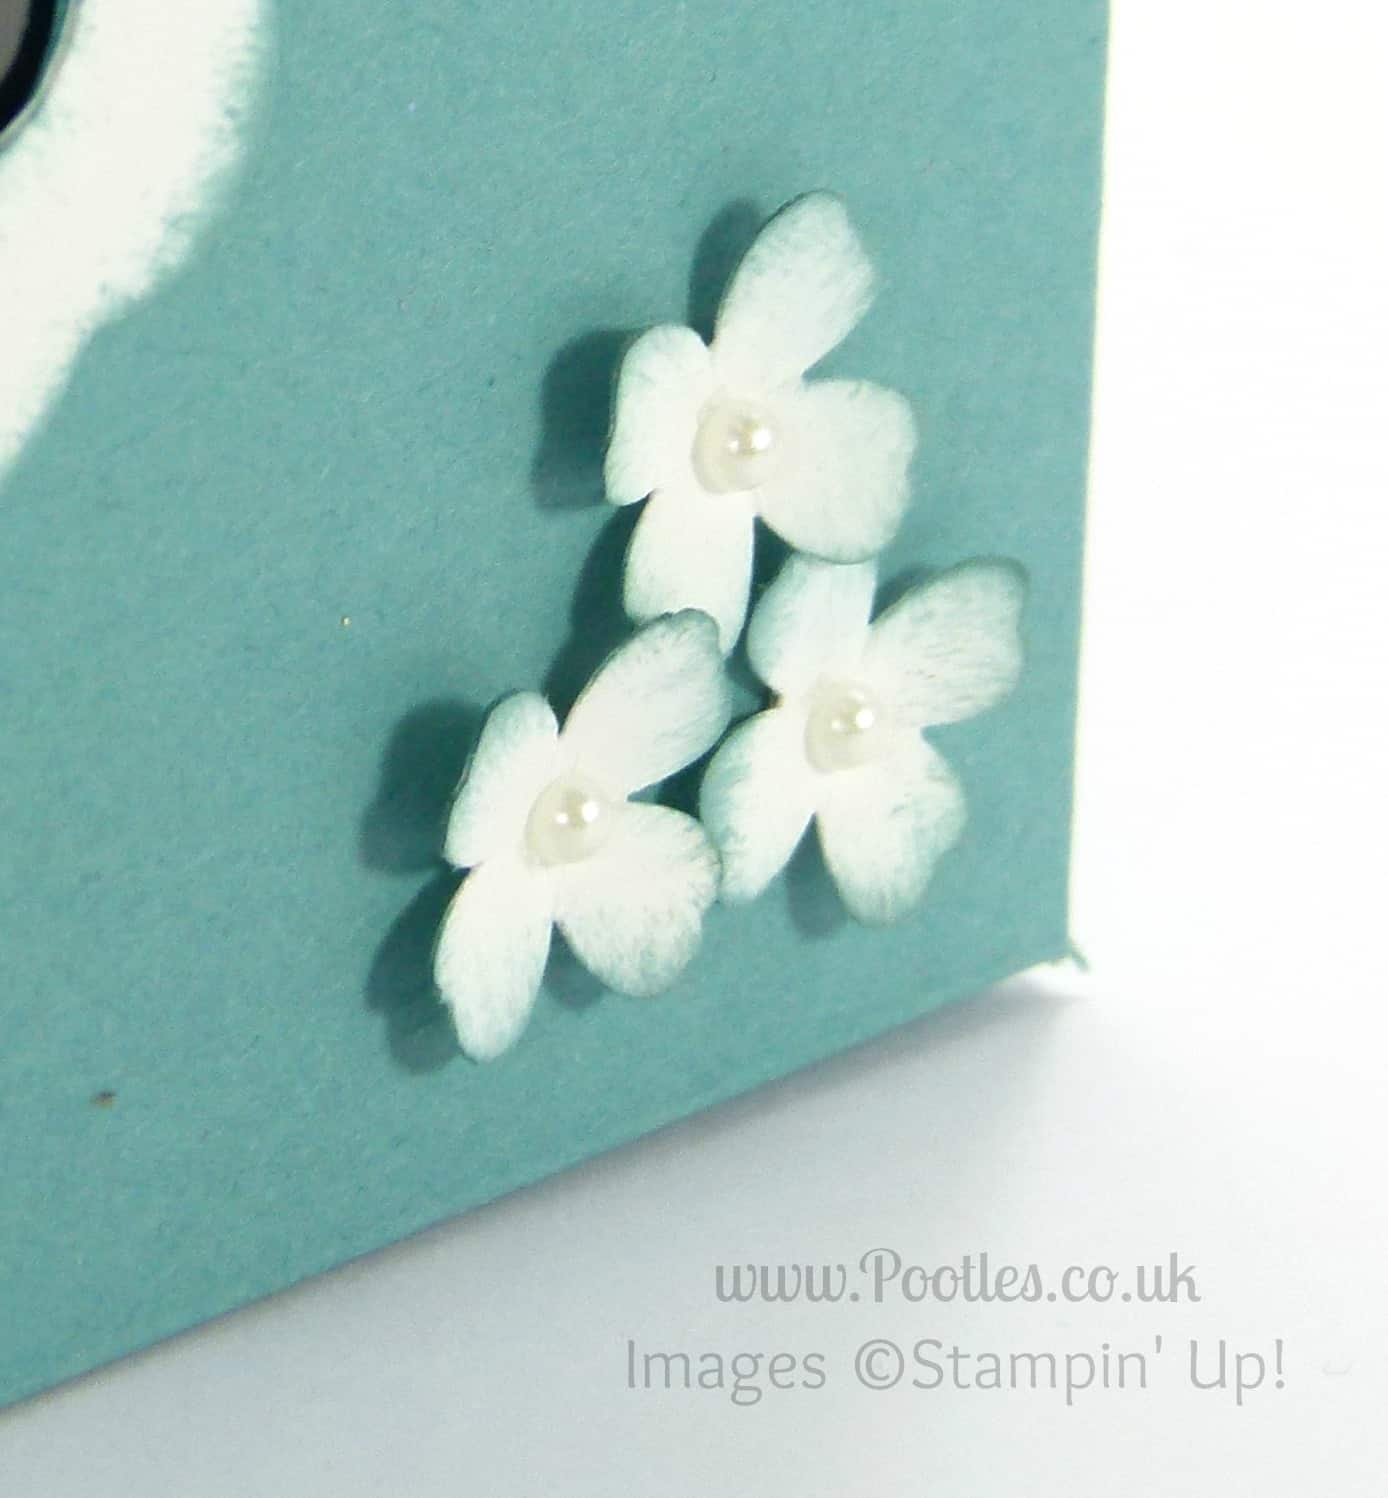 Stampin' Up! UK Demonstrator Pootles - Thank You Card Box & Lid Tutorial Punch Detail